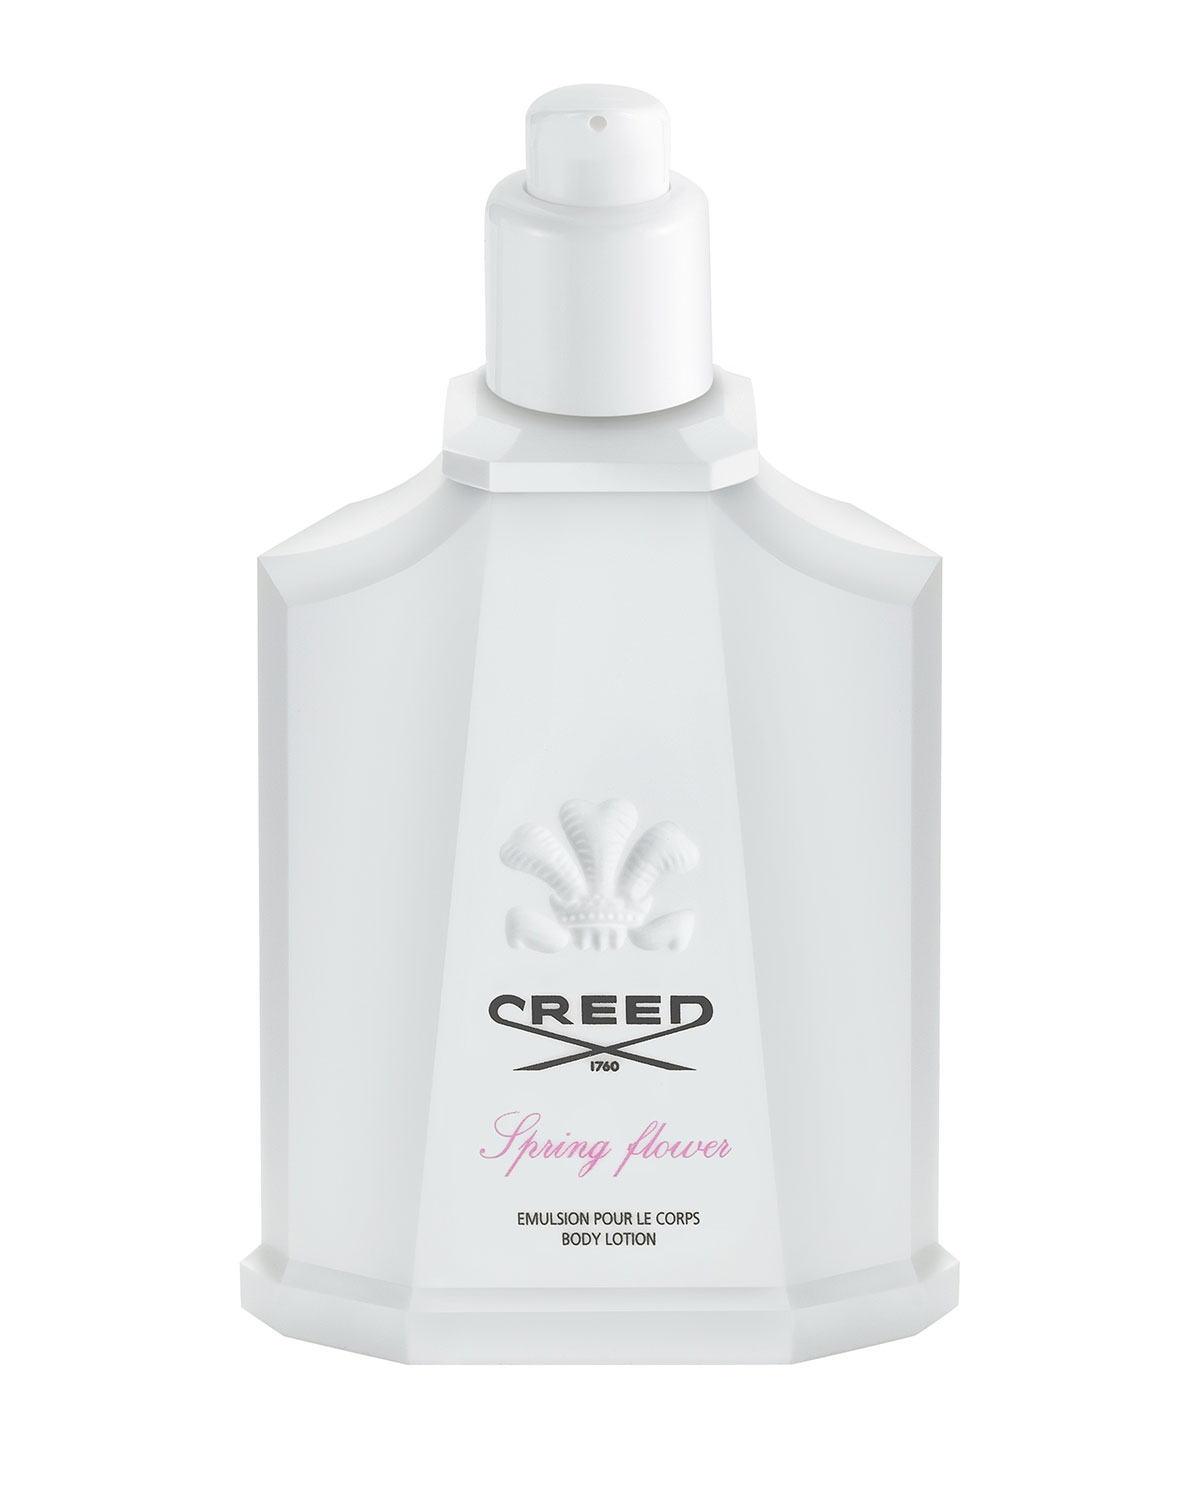 Creed spring flower body lotion neiman marcus spring flower body lotion mightylinksfo